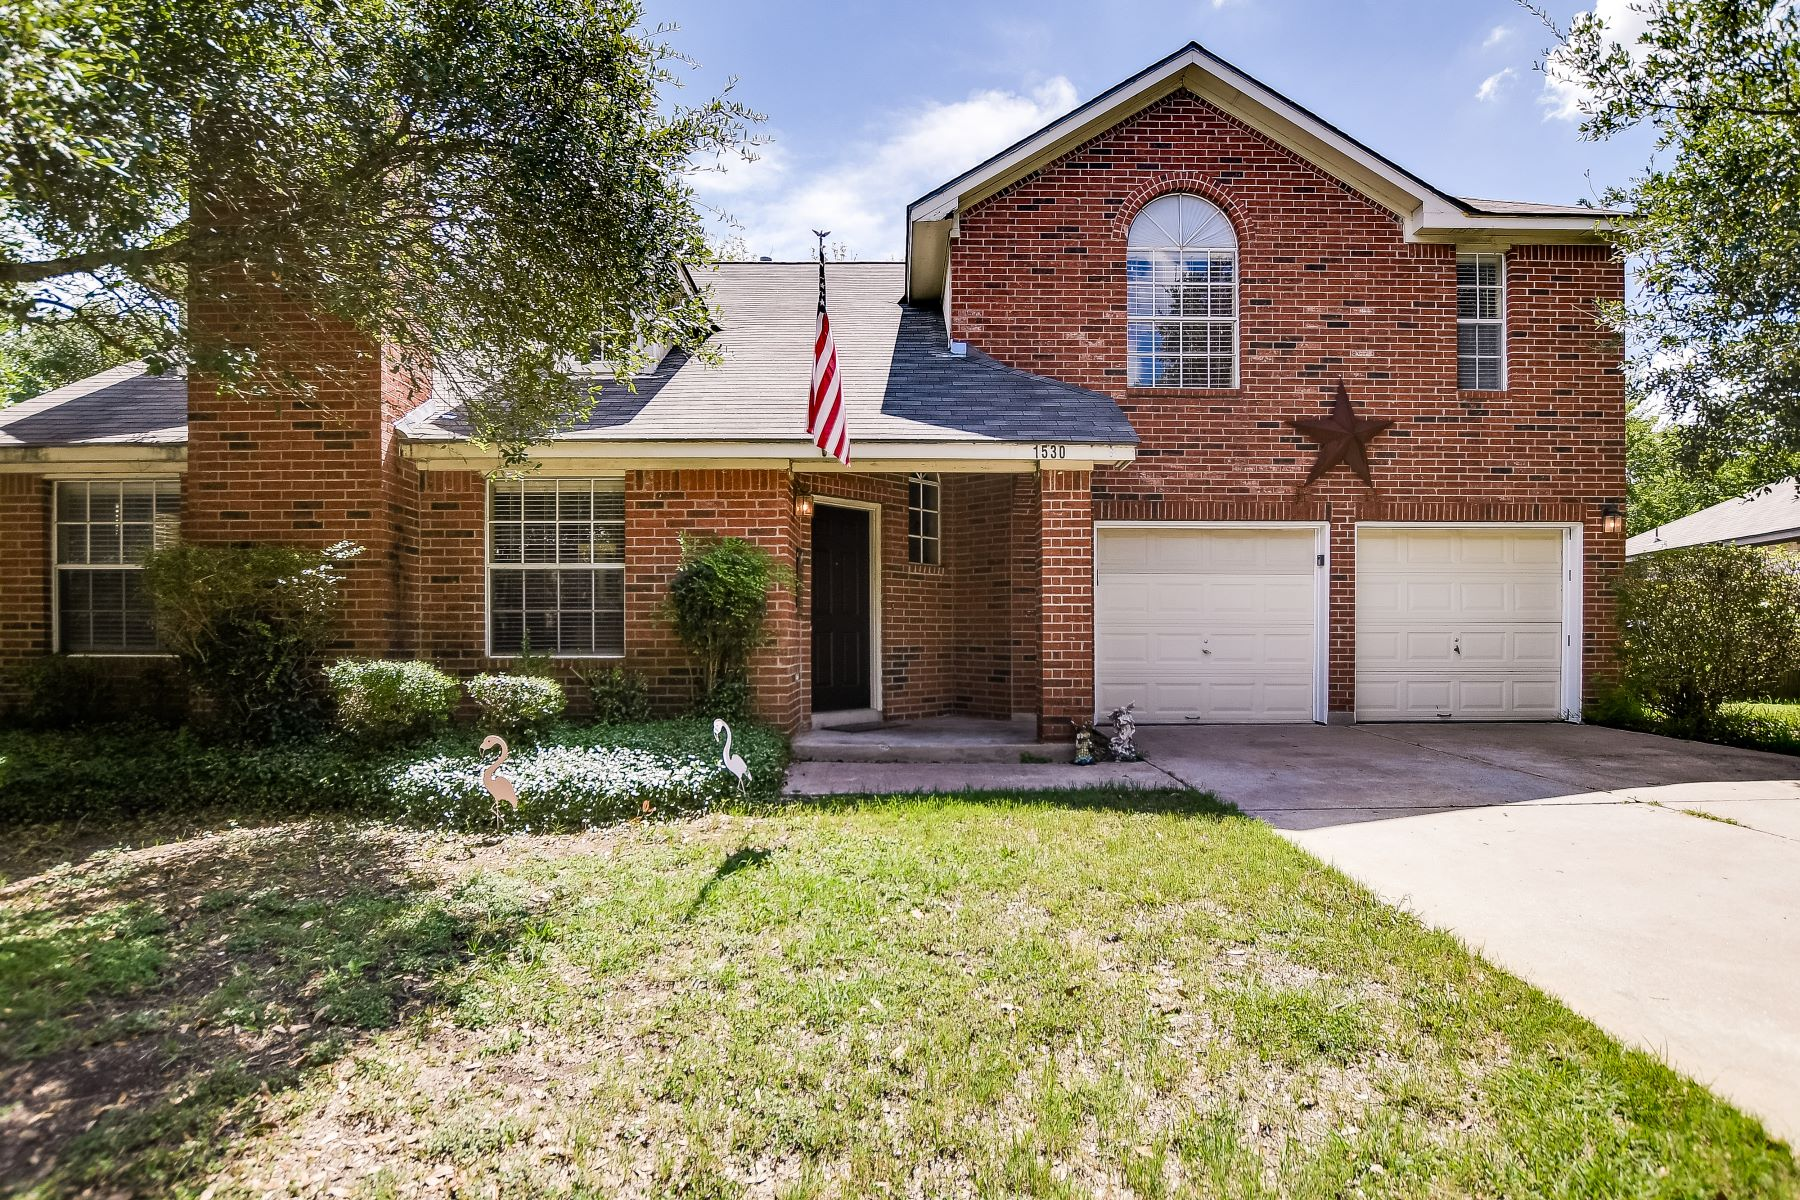 Single Family Homes for Sale at 1530 Arusha Street, Round Rock, TX 78664 1530 Arusha Street Round Rock, Texas 78664 United States